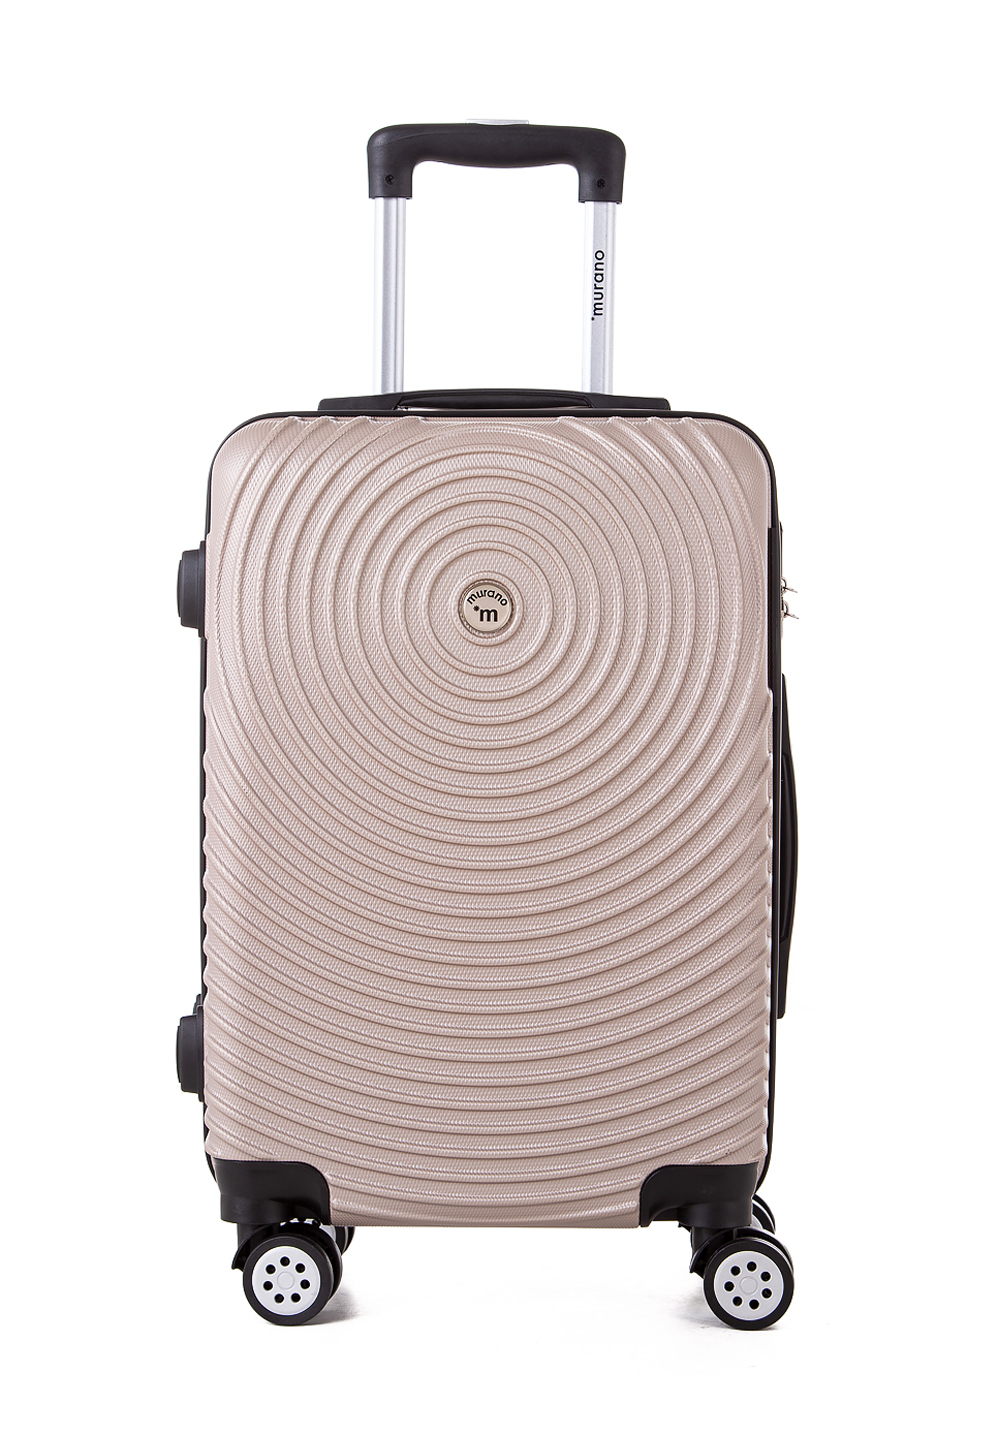 Murano Trolley, Hardcase, B34 x H55 x T23 cm gold | Taschen > Koffer & Trolleys > Trolleys | Gold | Murano